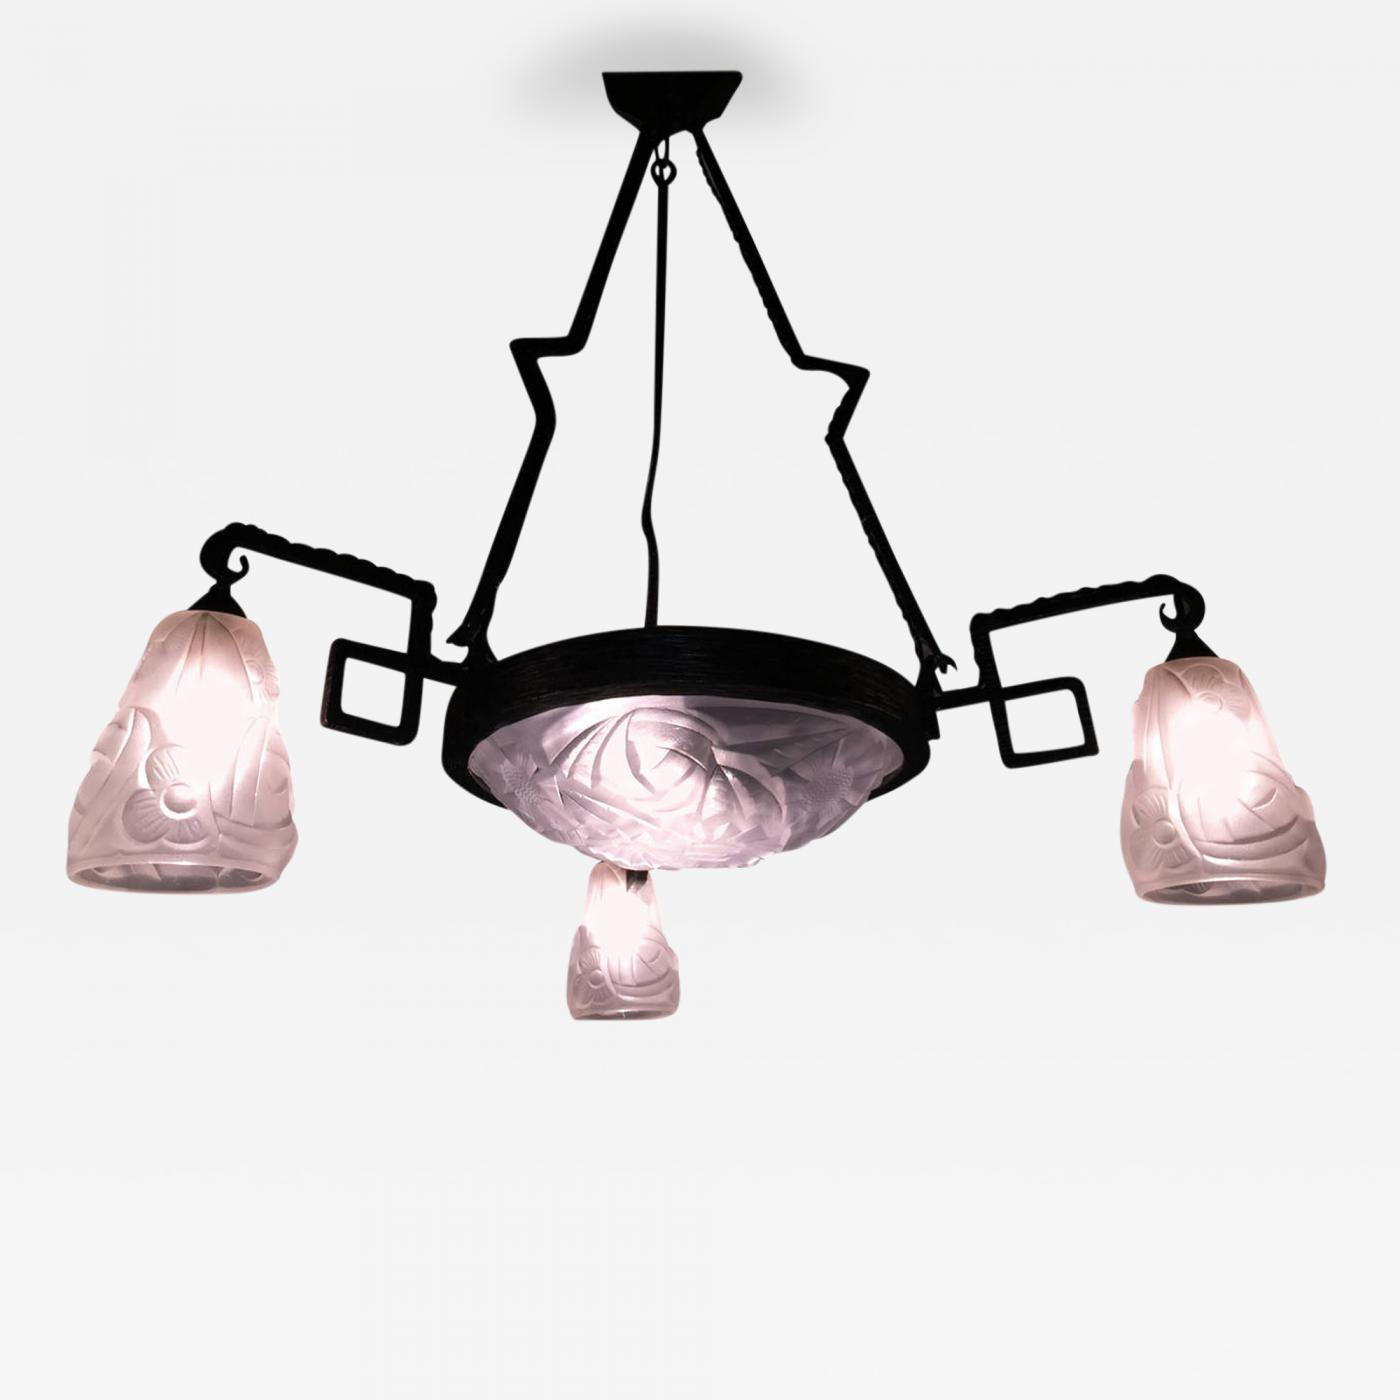 David guron degue french deco chandelier listings furniture lighting chandeliers and pendants aloadofball Choice Image